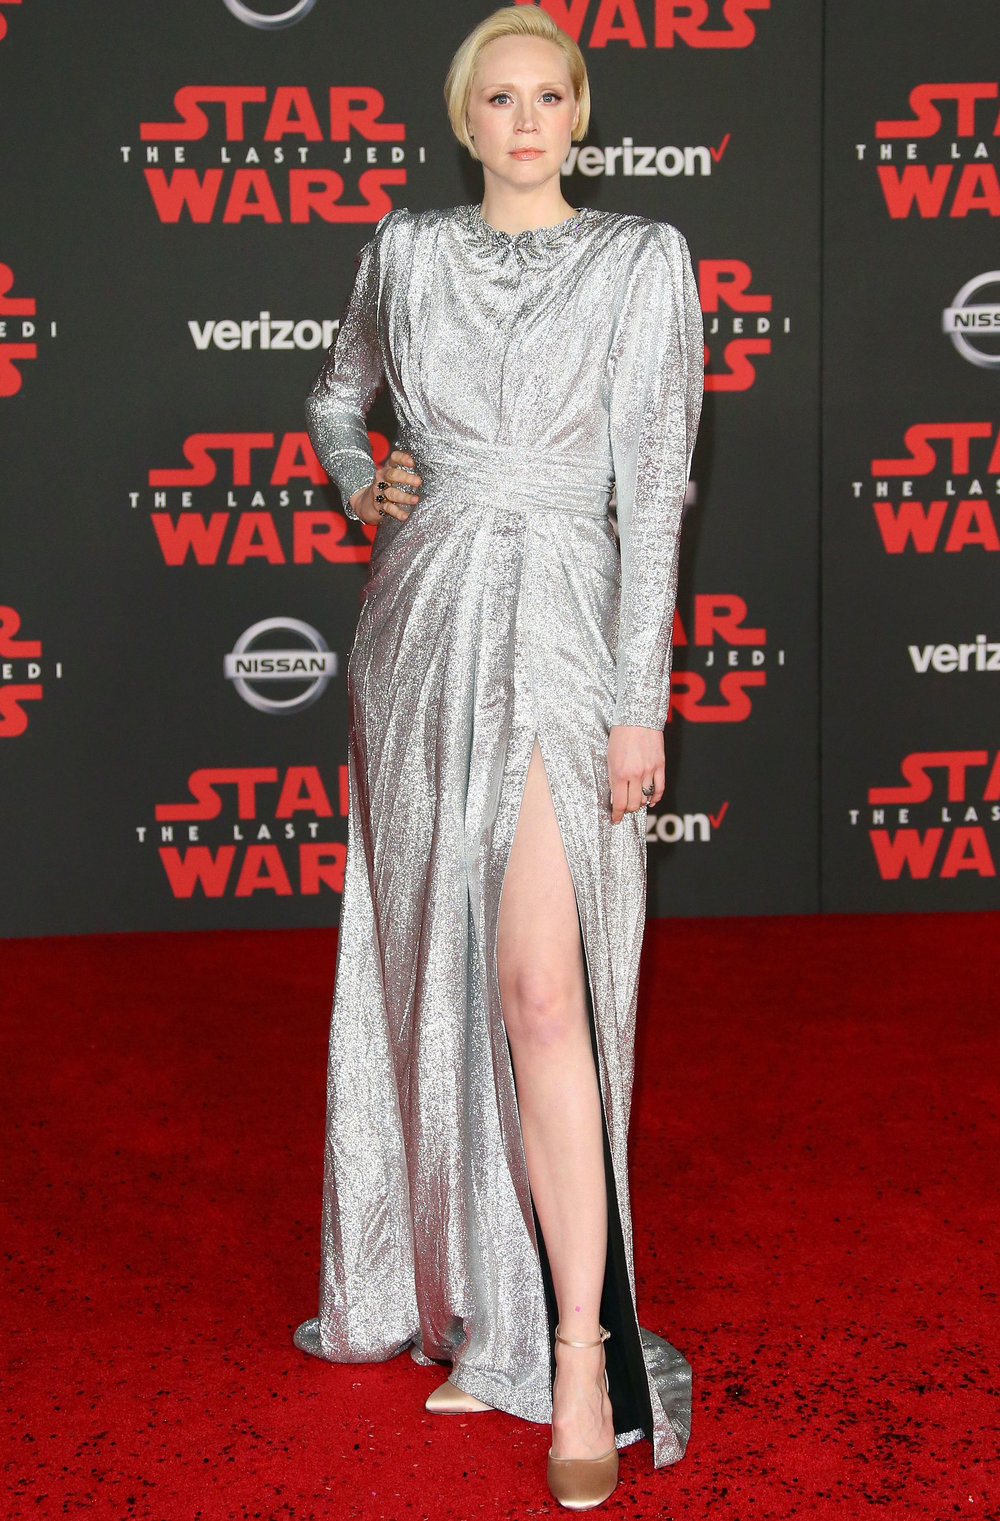 Gwendoline Christie - Reprising the fan-favorite character of Captain Phantasma, Gwendoline came in a head-turning custom Gucci dress that struck us as powerful and villanous.